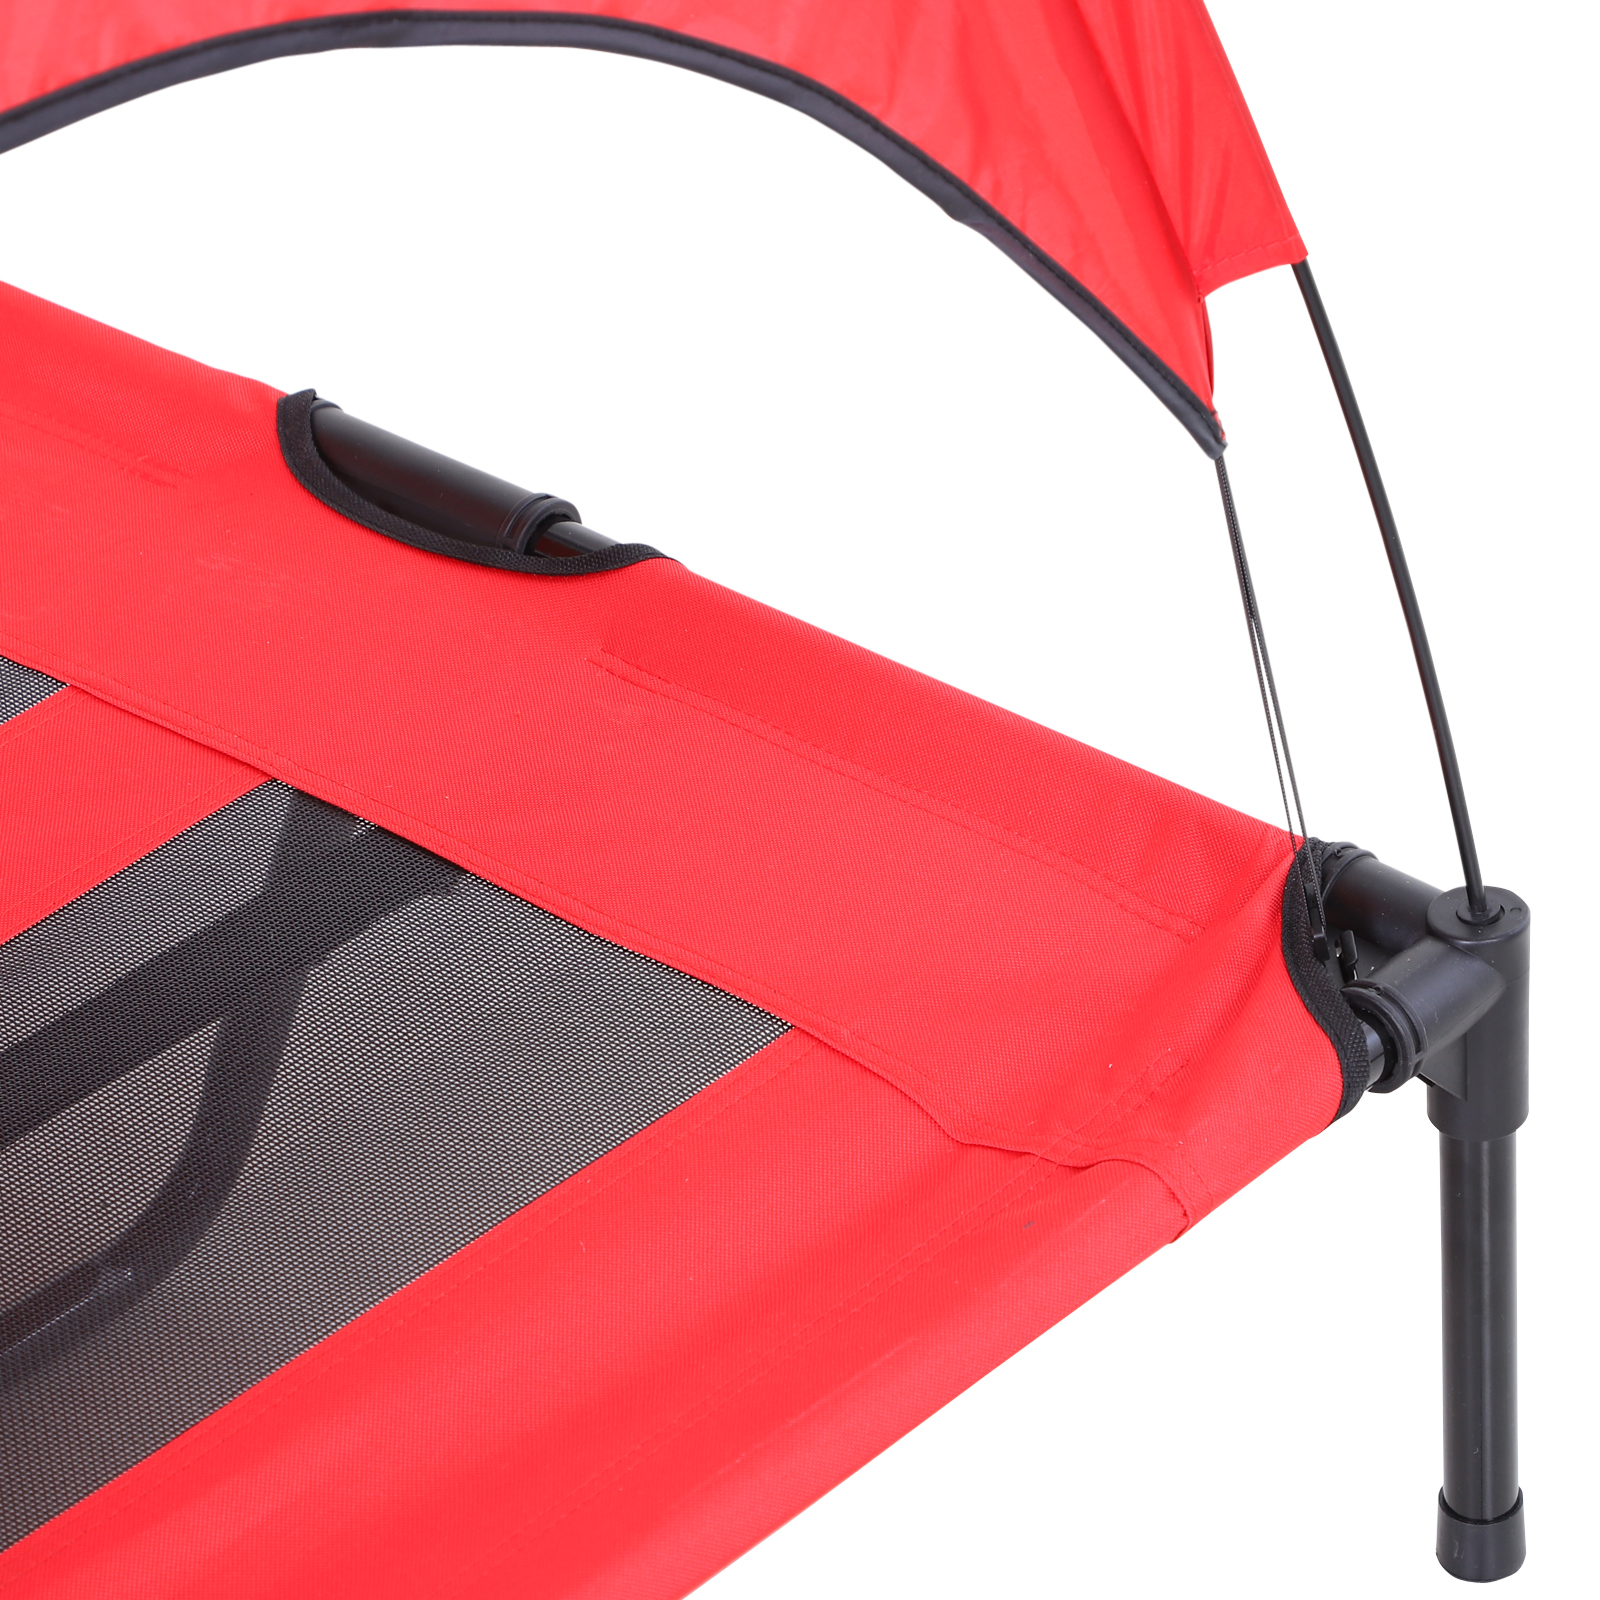 PawHut-Elevated-Pet-Bed-Dog-Foldable-Cot-Tent-Canopy thumbnail 22